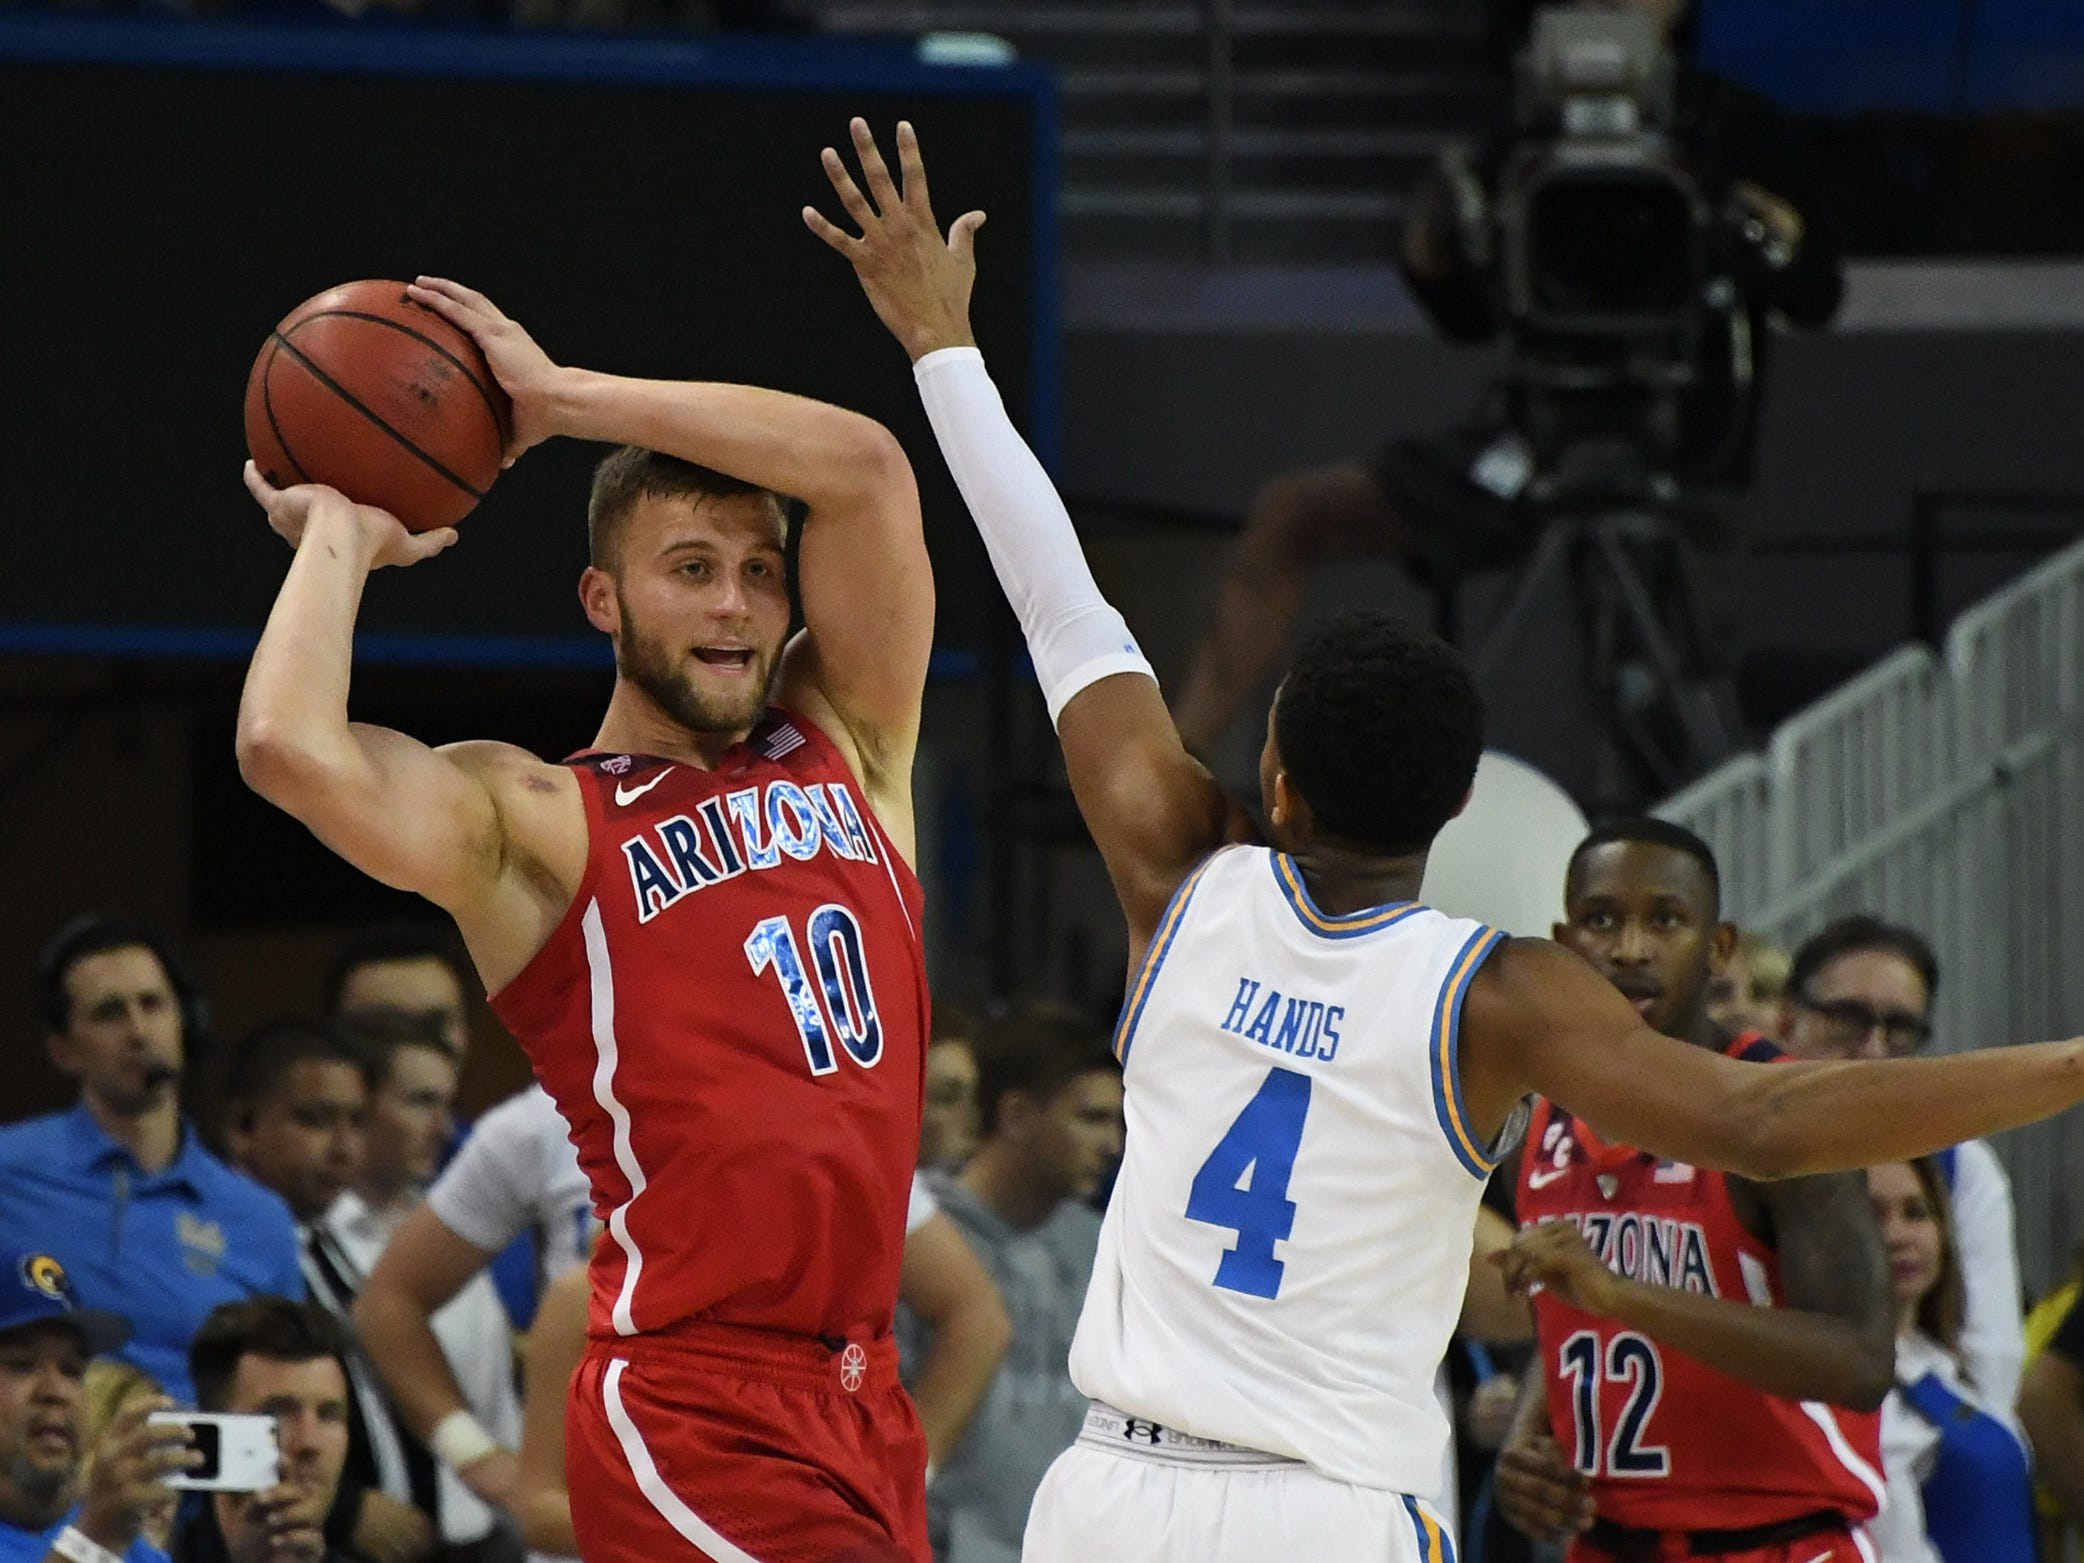 Jan 26, 2019; Los Angeles, CA, USA; Arizona Wildcats forward Ryan Luther (10) holds the ball away from UCLA Bruins guard Jaylen Hands (4) in the second half at Pauley Pavilion.